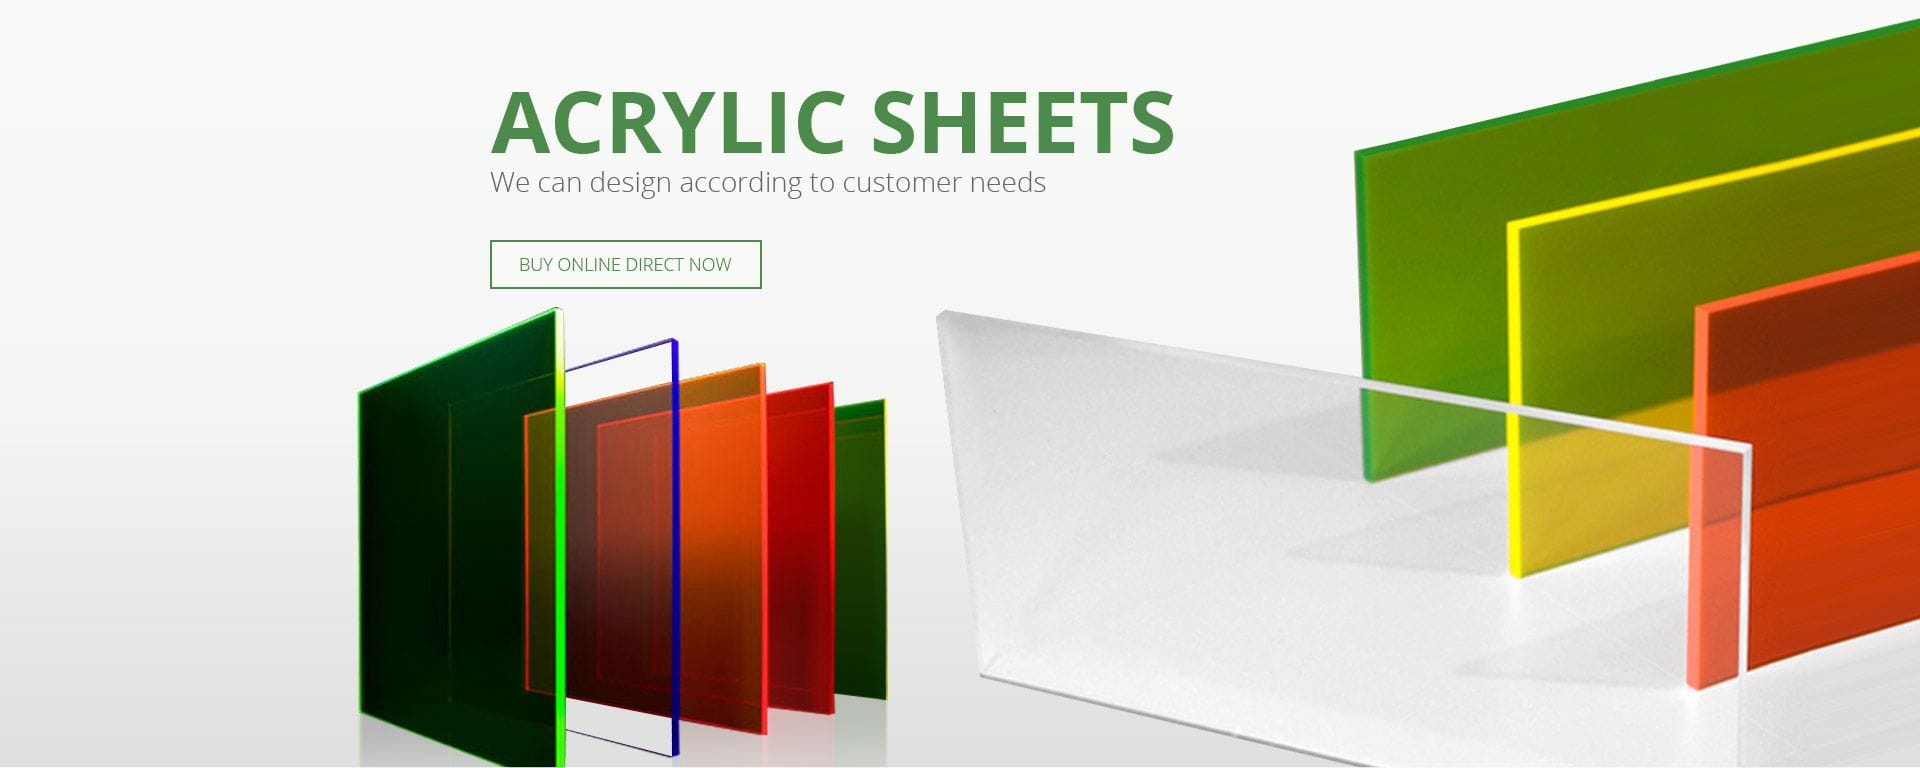 Acrylic Sheets Rods Tubes And Panels Manufacturer And